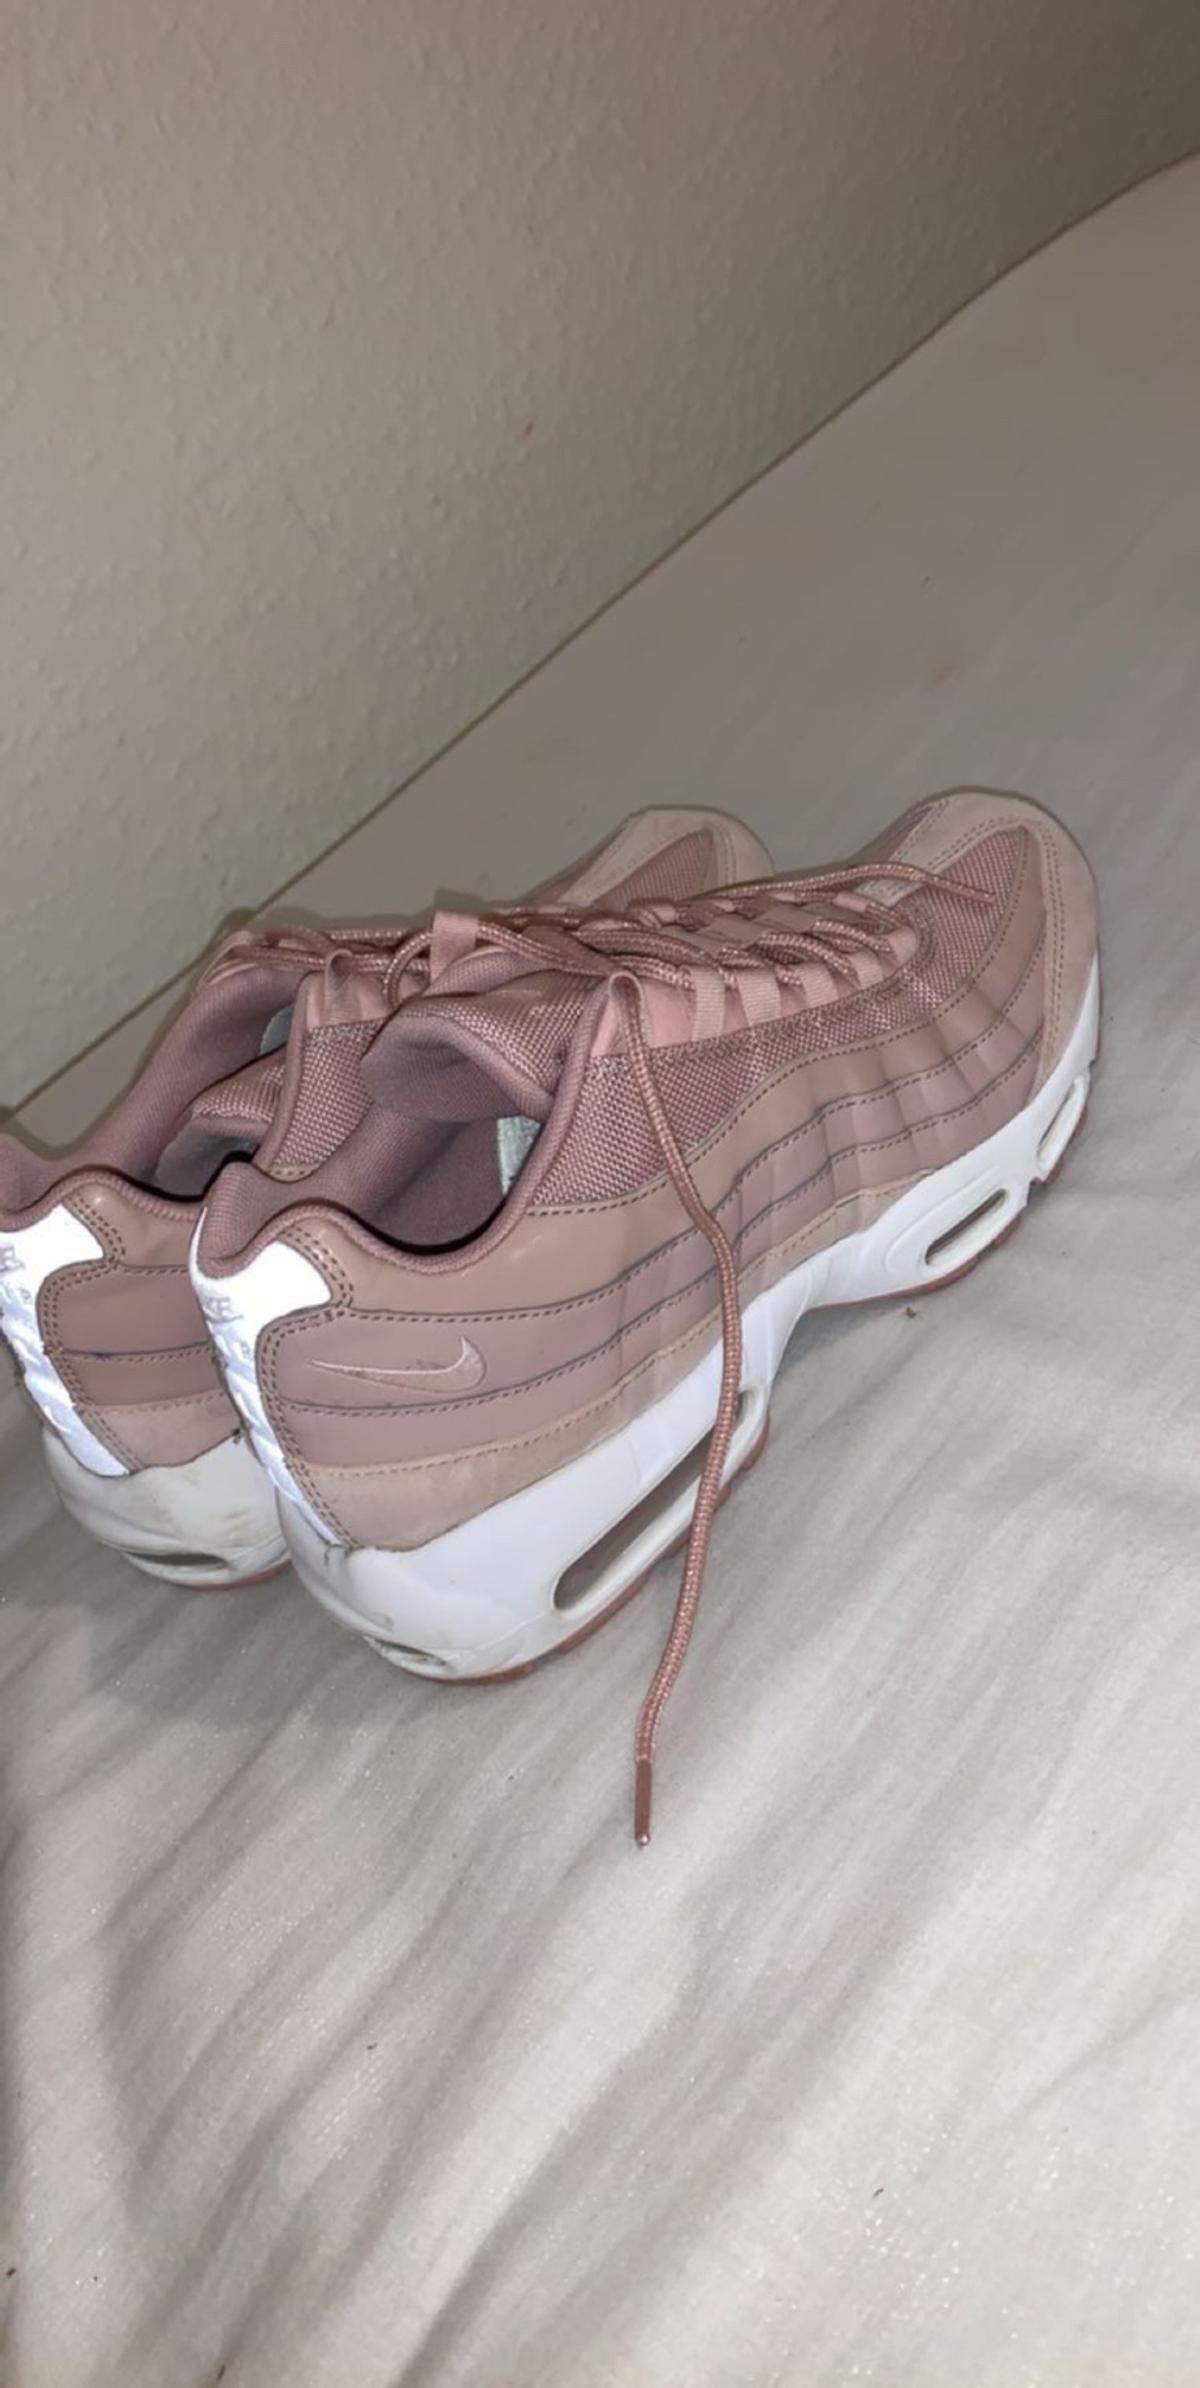 new product 107b8 76adb Pink air max 95s, size 8 in LN5 Lincoln for £30.00 for sale ...